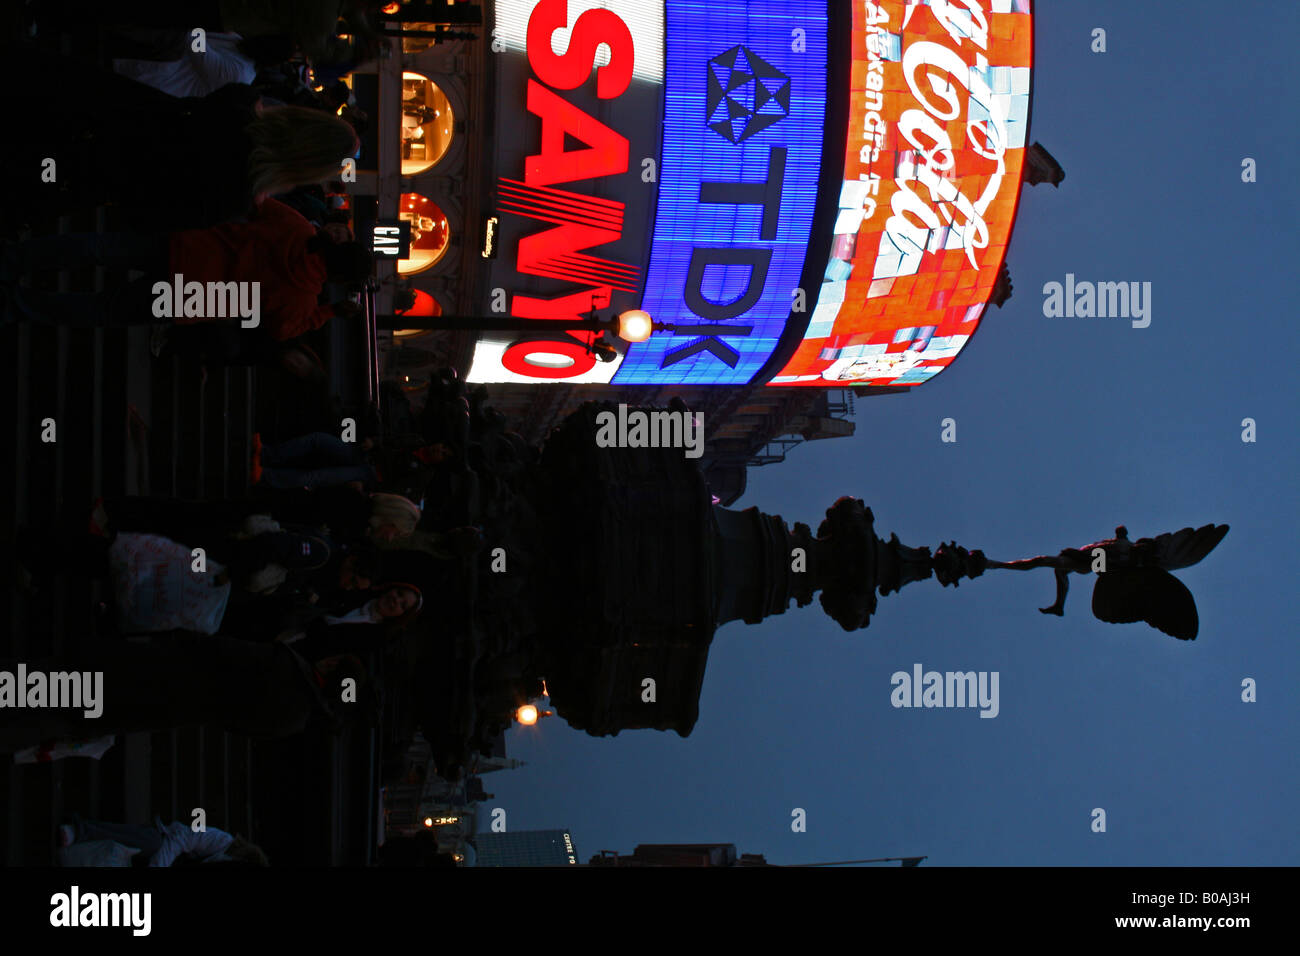 The bright neon lights of Picadilly Circus silhouetting the Eros fountain. - Stock Image